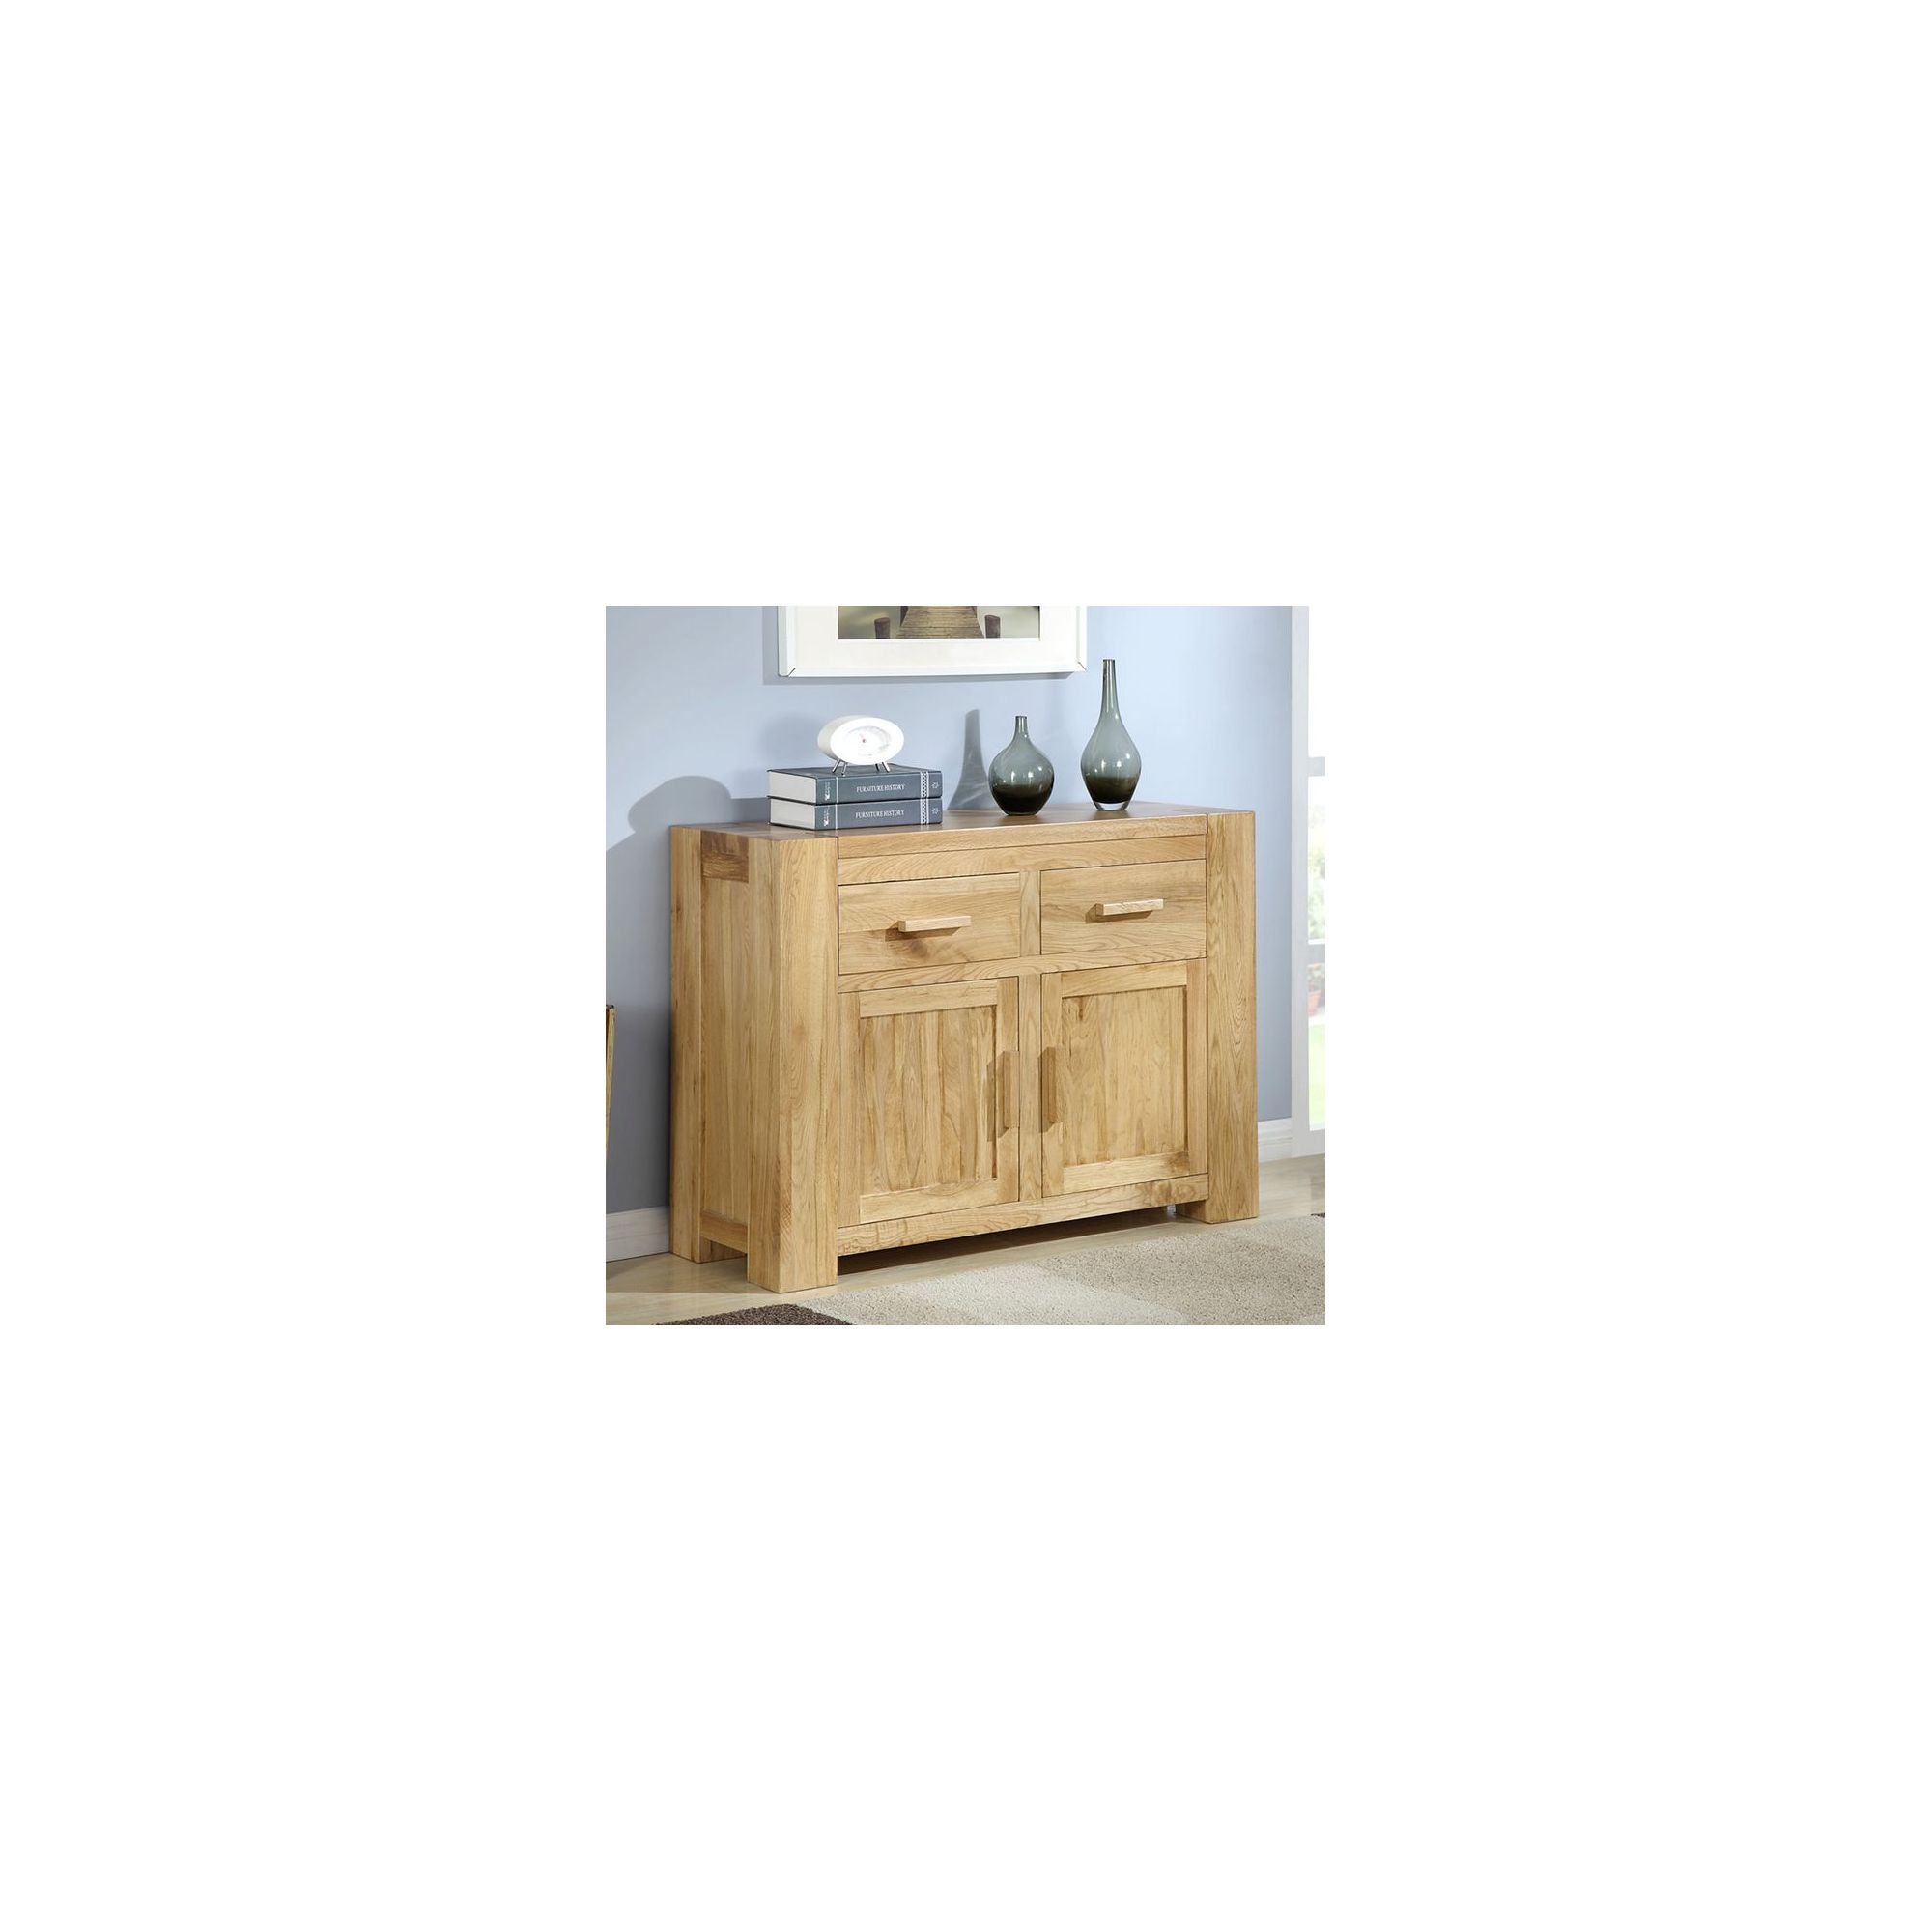 Shankar Enterprises Oslo Medium Sideboard at Tesco Direct